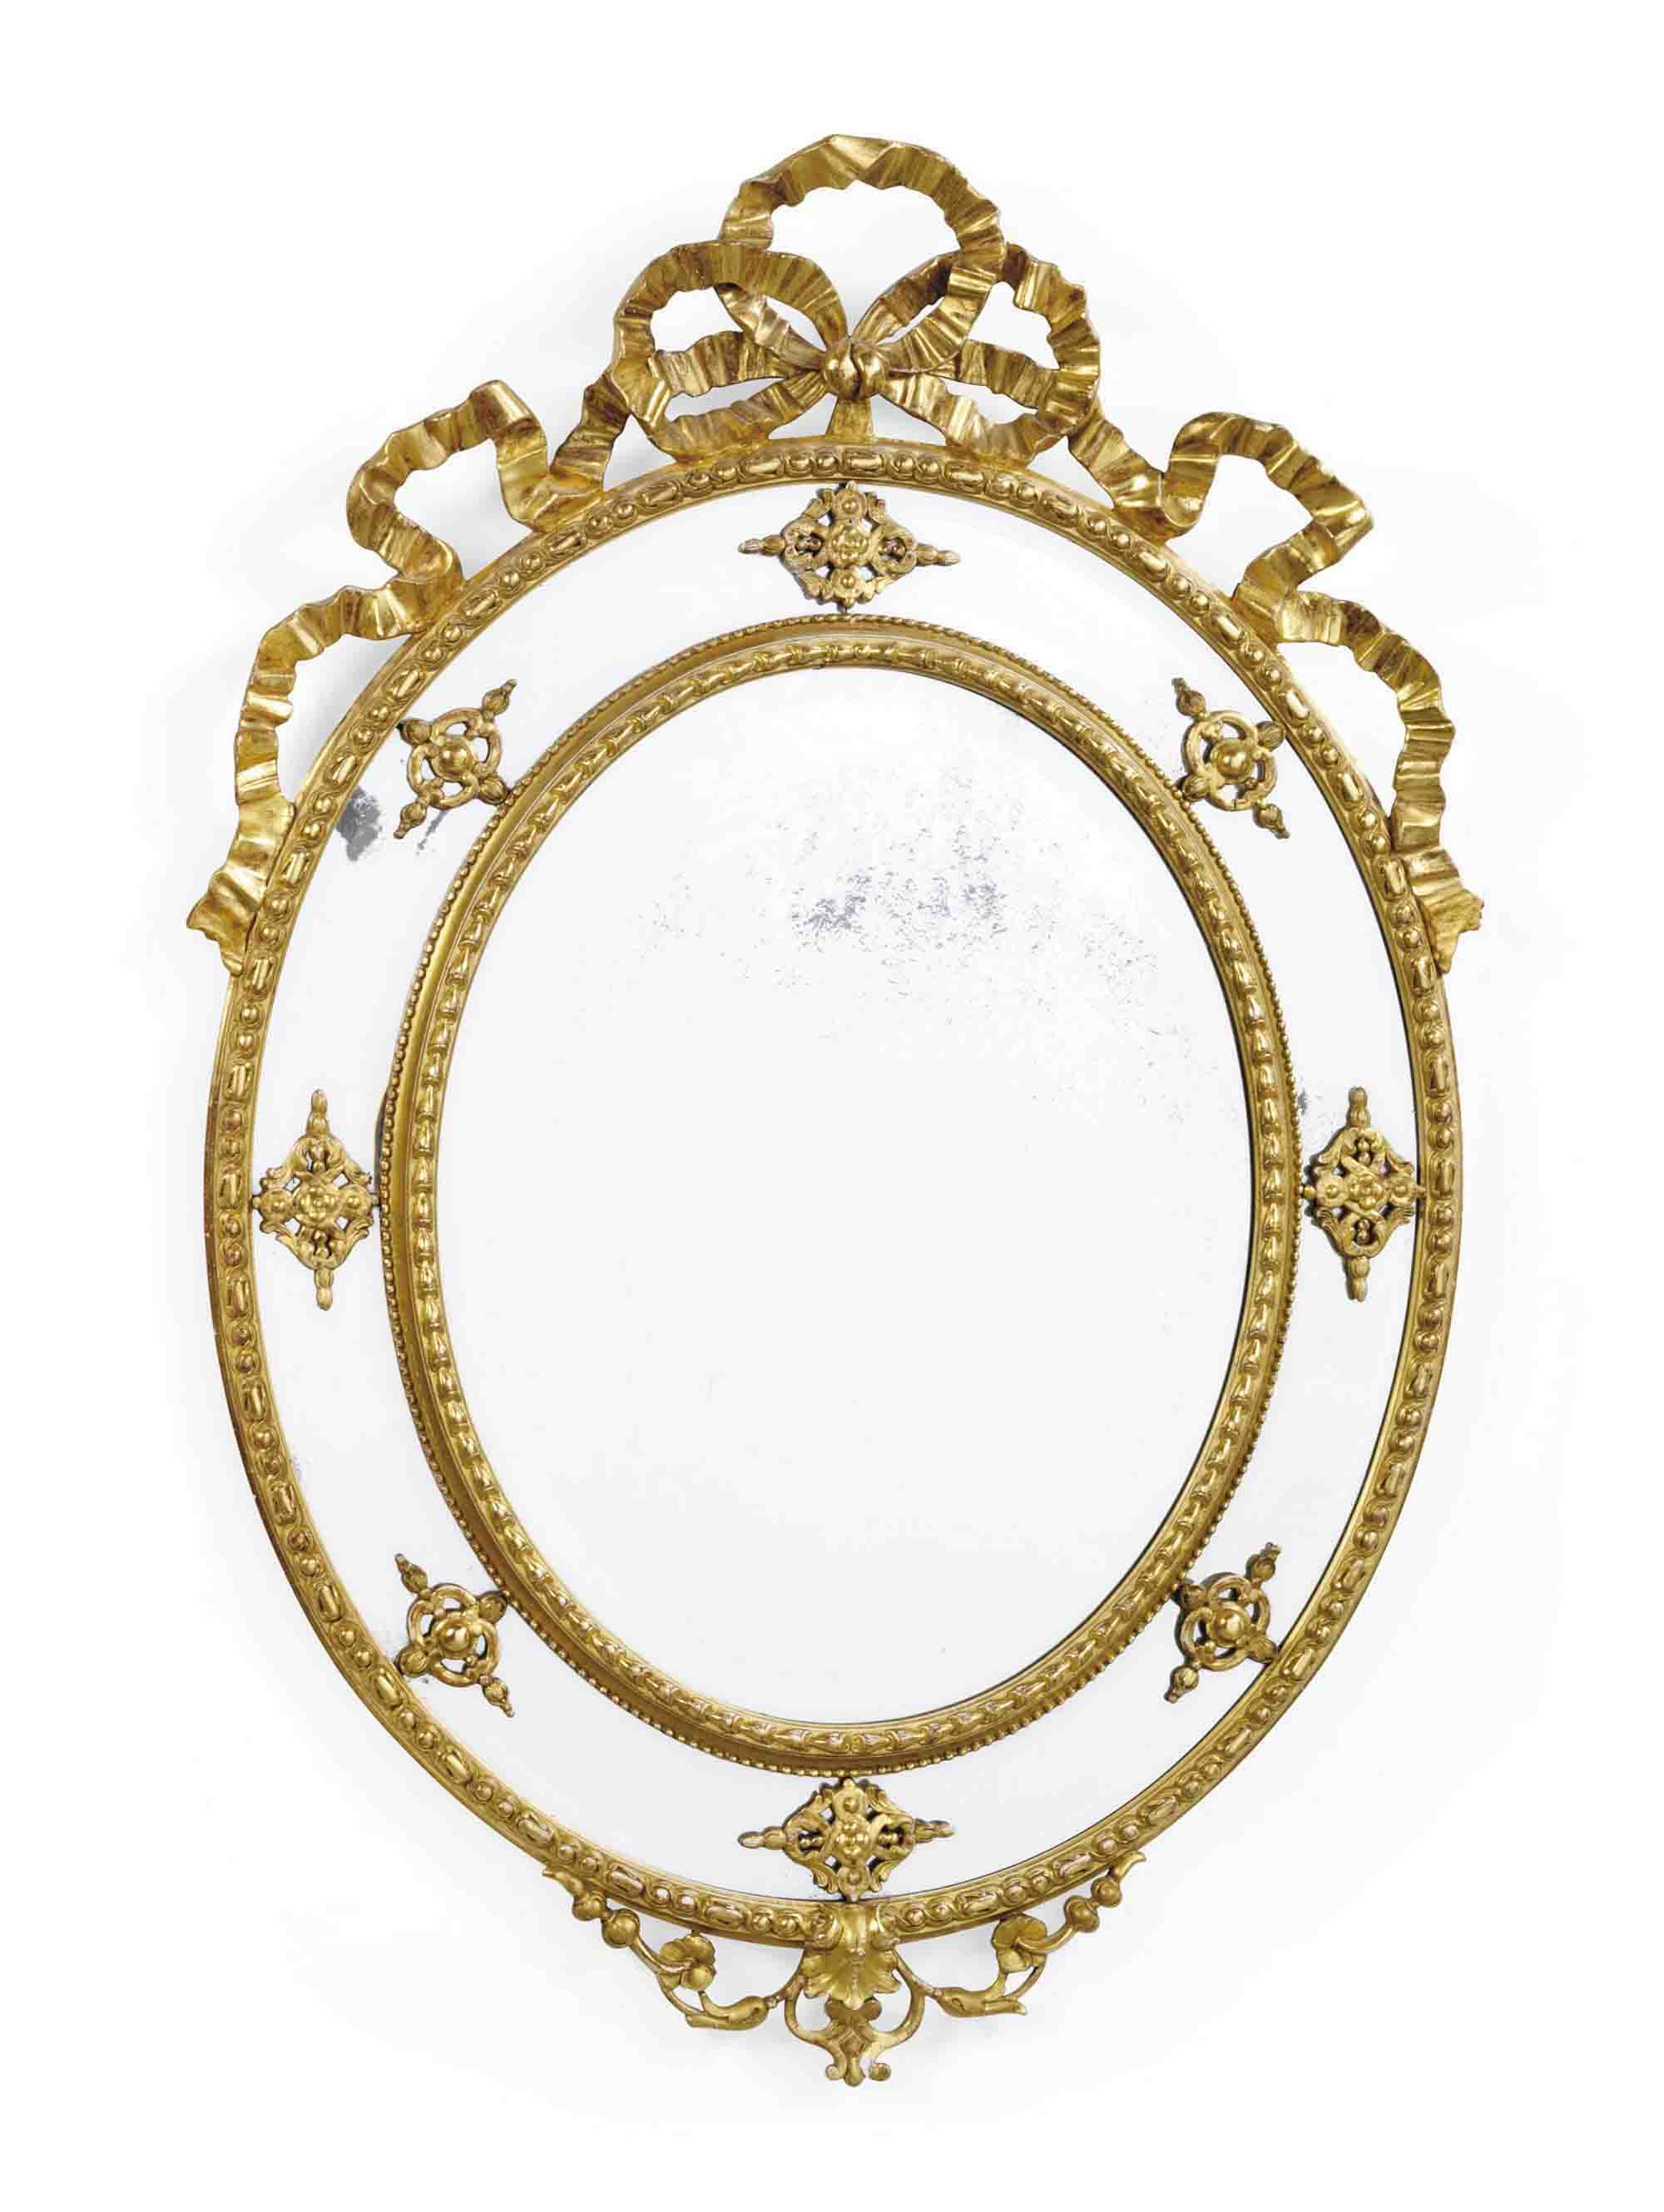 A FRENCH GILTWOOD AND COMPOSITION MIRROR